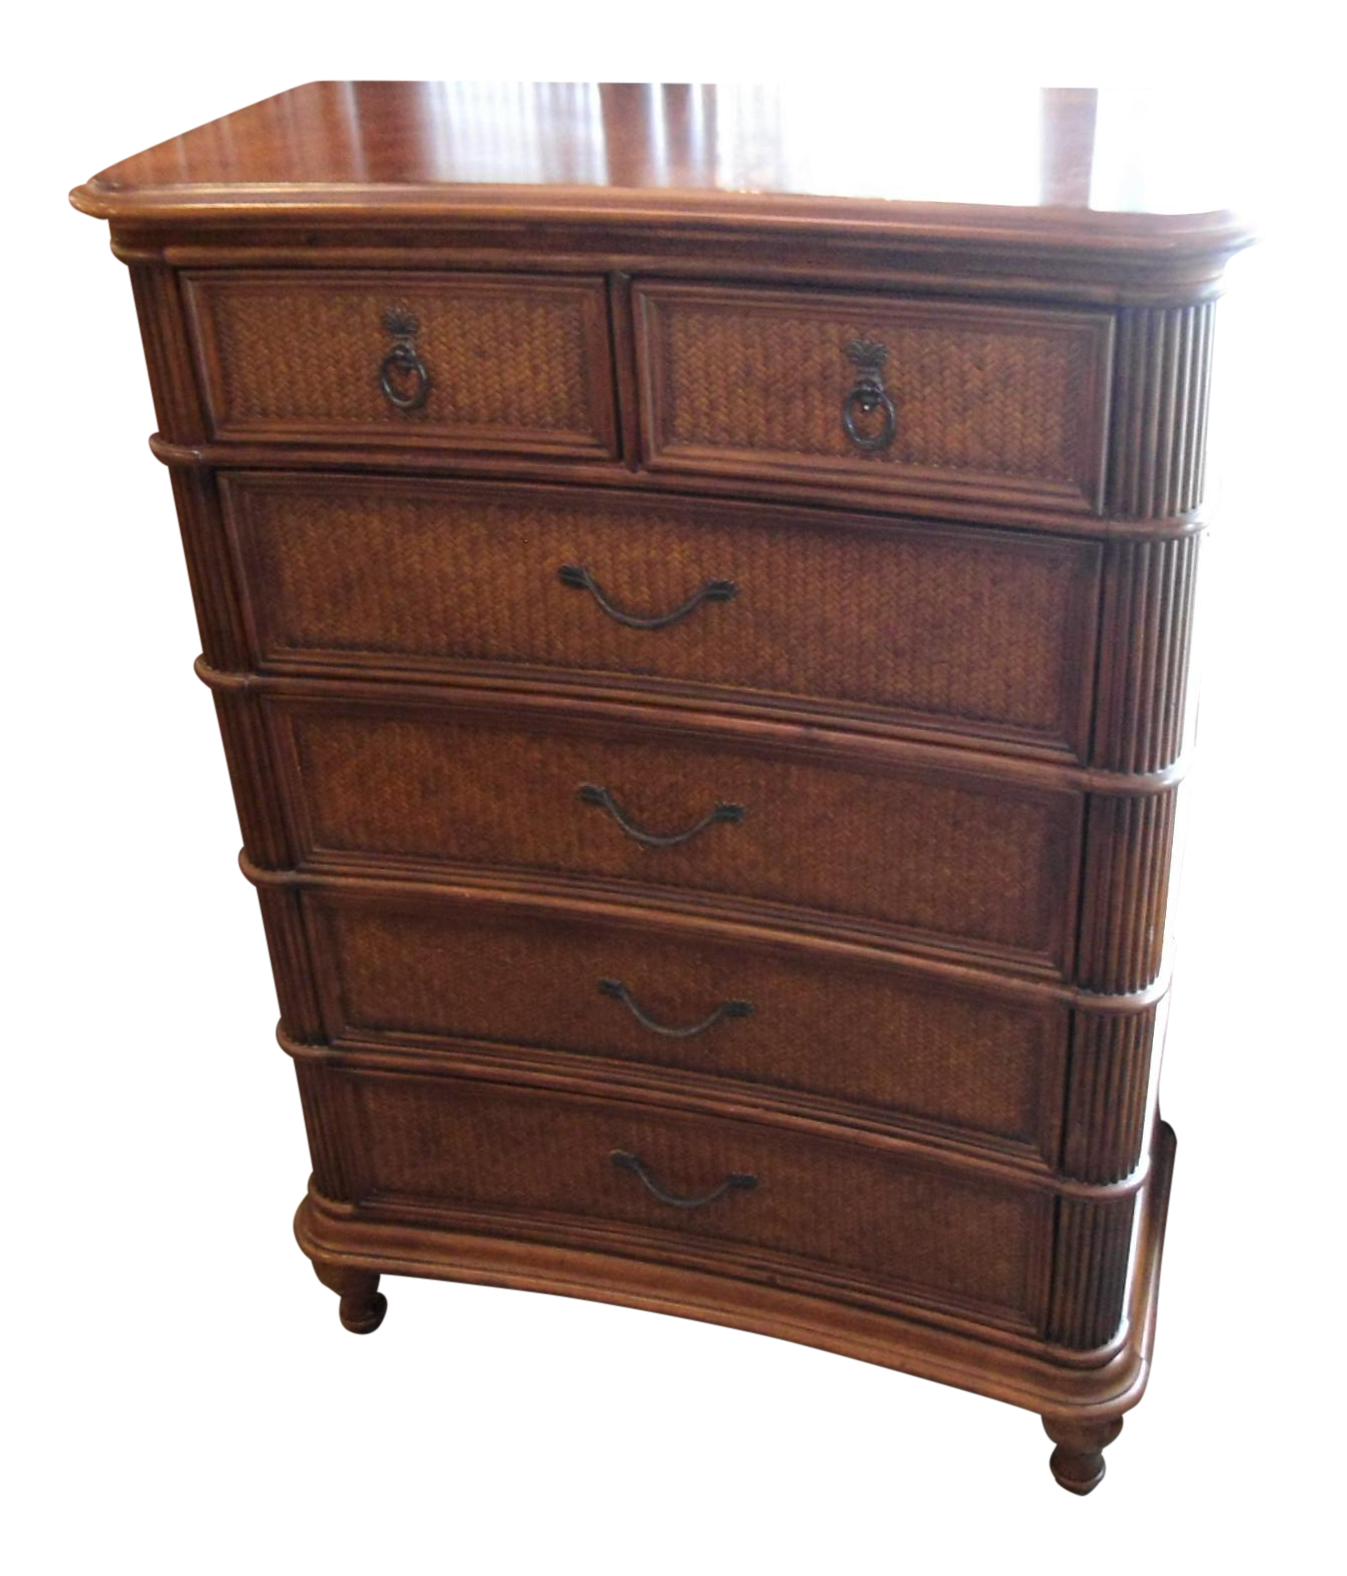 kathy ireland rattan chest of drawers chairish. Black Bedroom Furniture Sets. Home Design Ideas